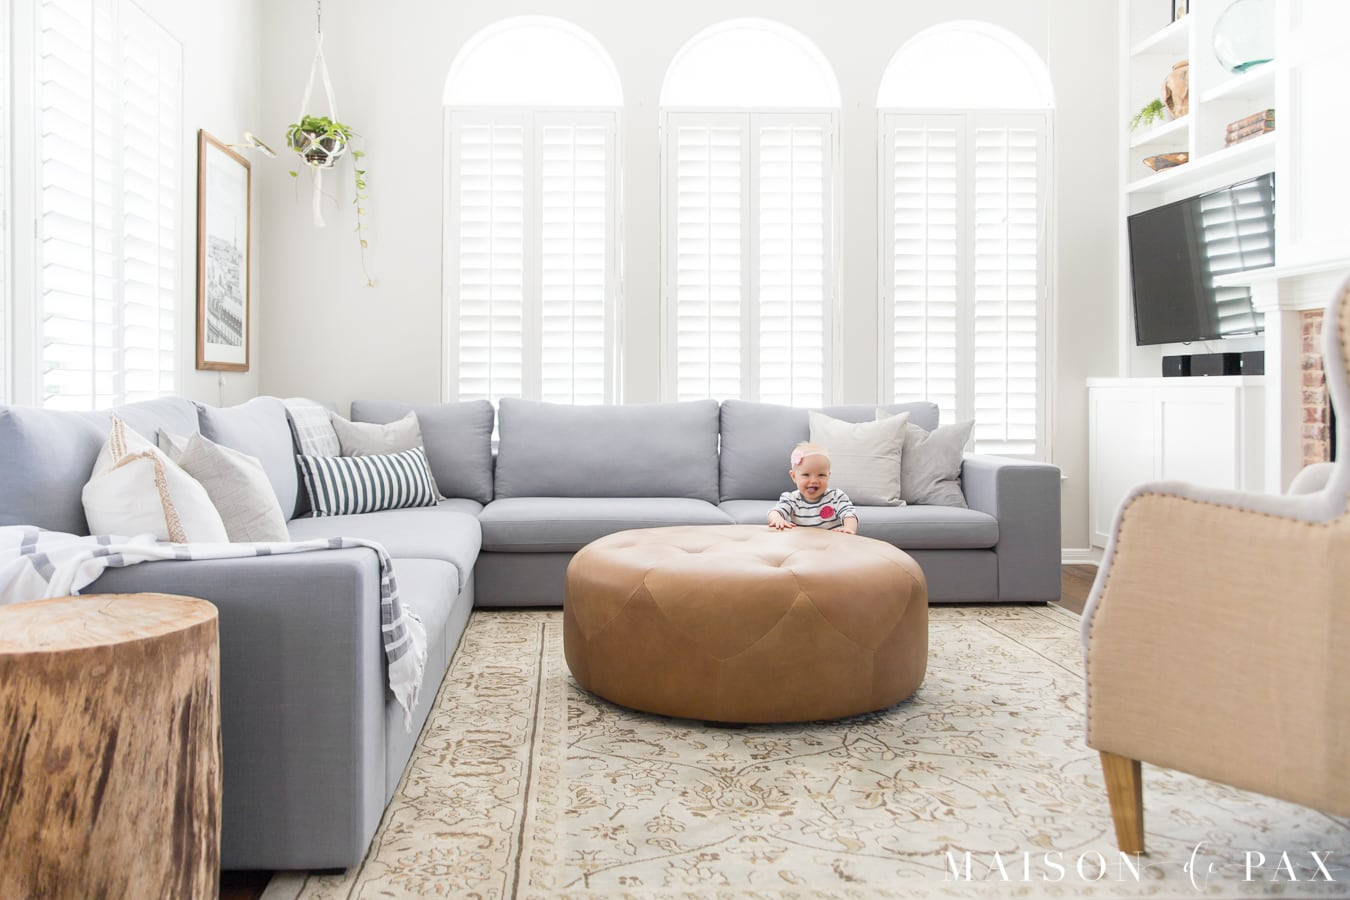 Sectional Sofa Living Room Layout Designing A Small Living Room With A Large Sectional Maison De Pax